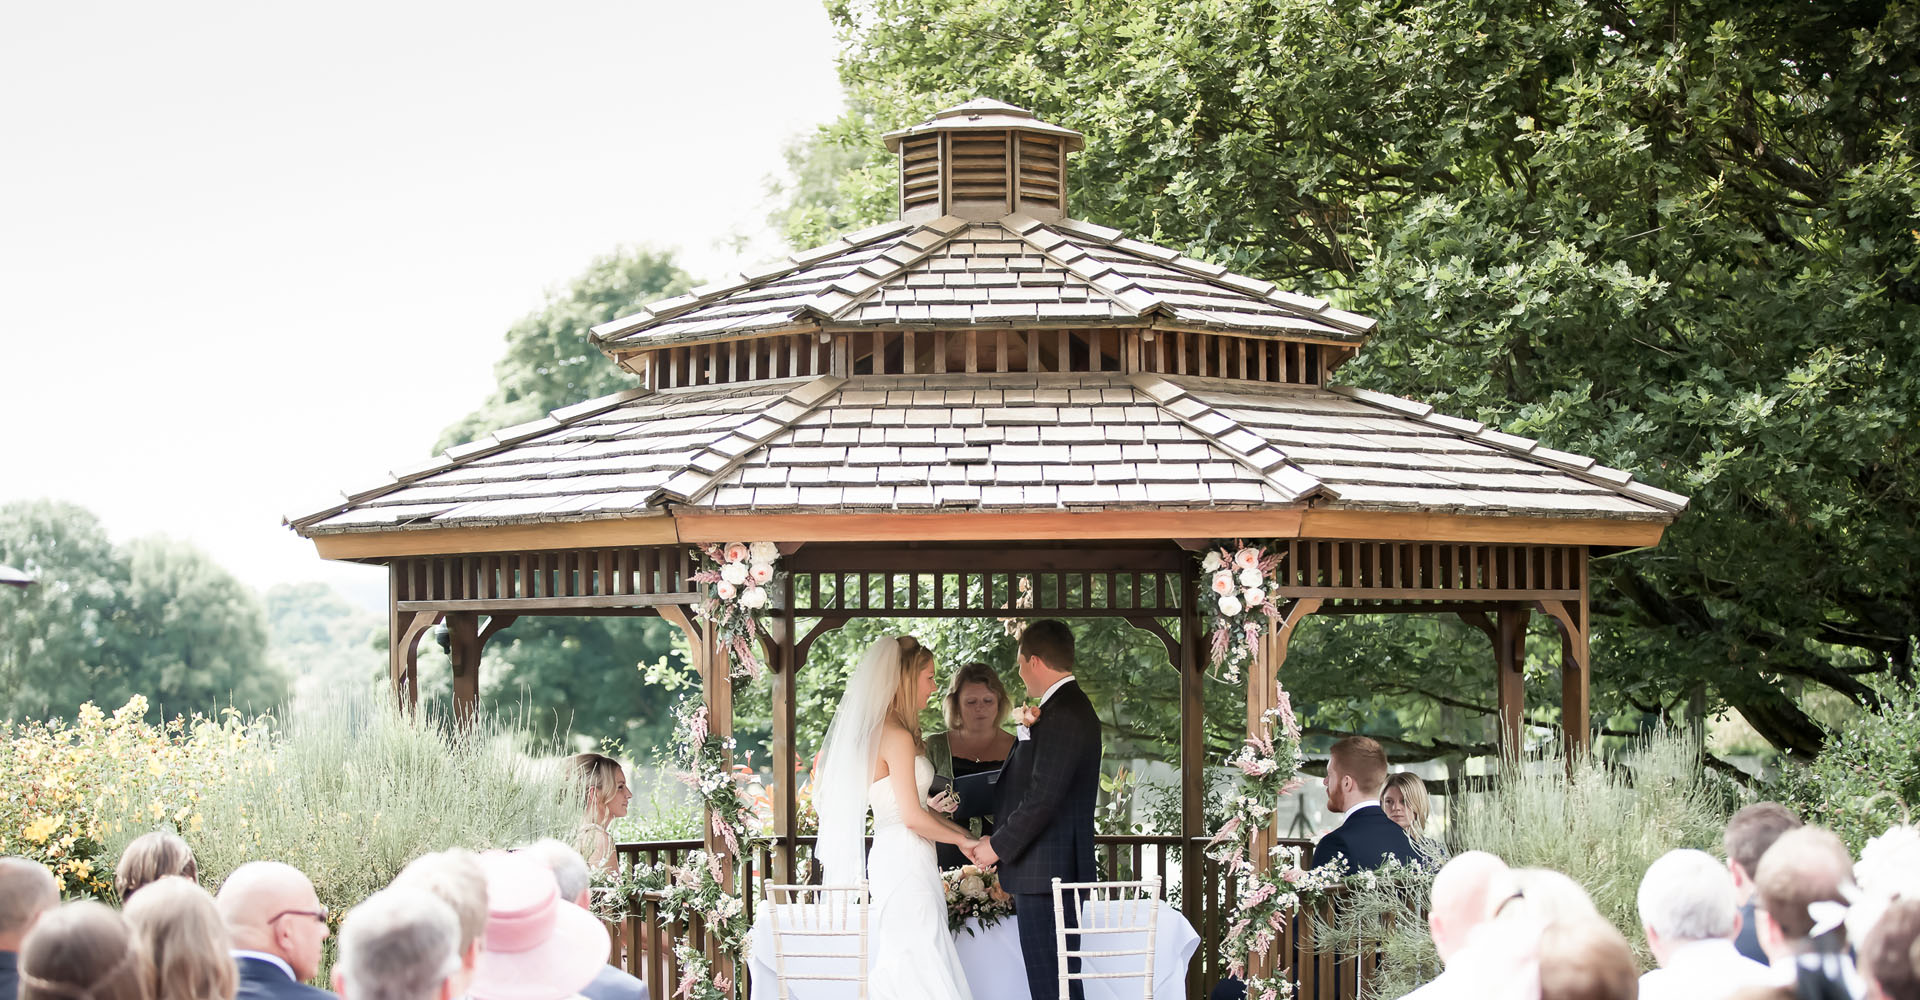 Wedding venue in high wycombe buckinghamshire pavilion uk for Indoor and outdoor wedding venues